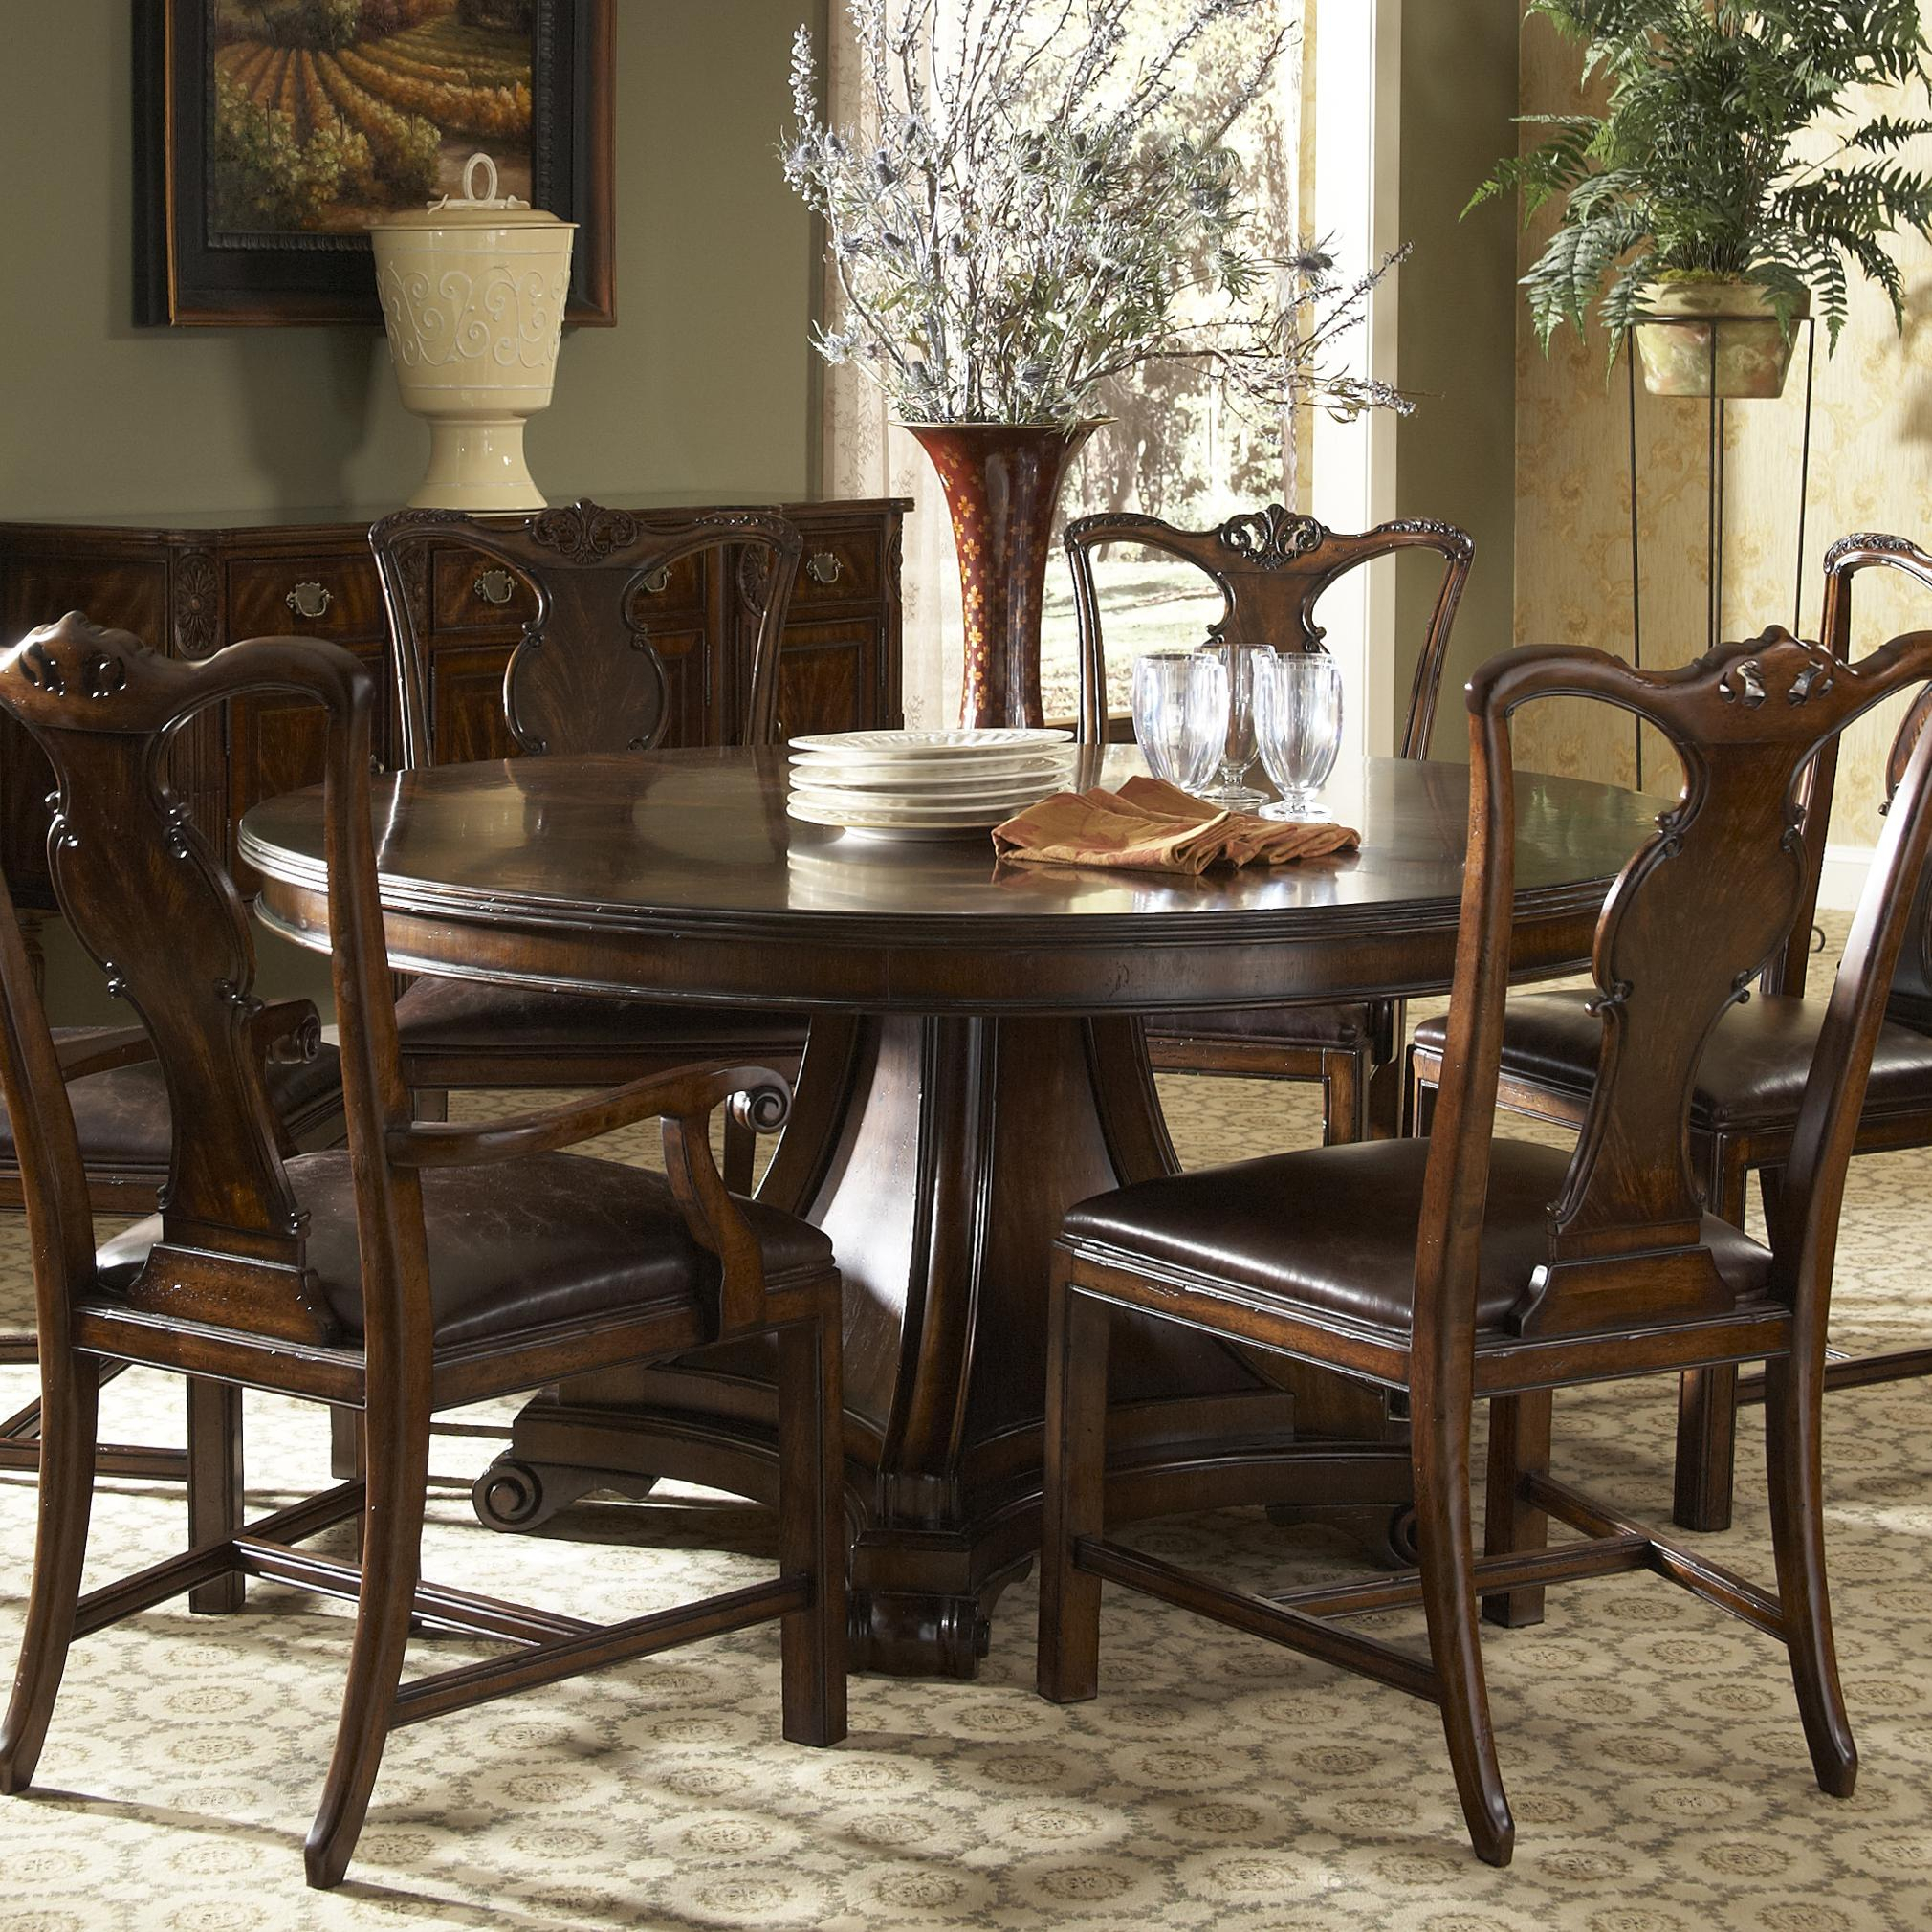 Traditional Round Dining Table With Inlayfine With Regard To 2017 Classic Dining Tables (View 3 of 15)